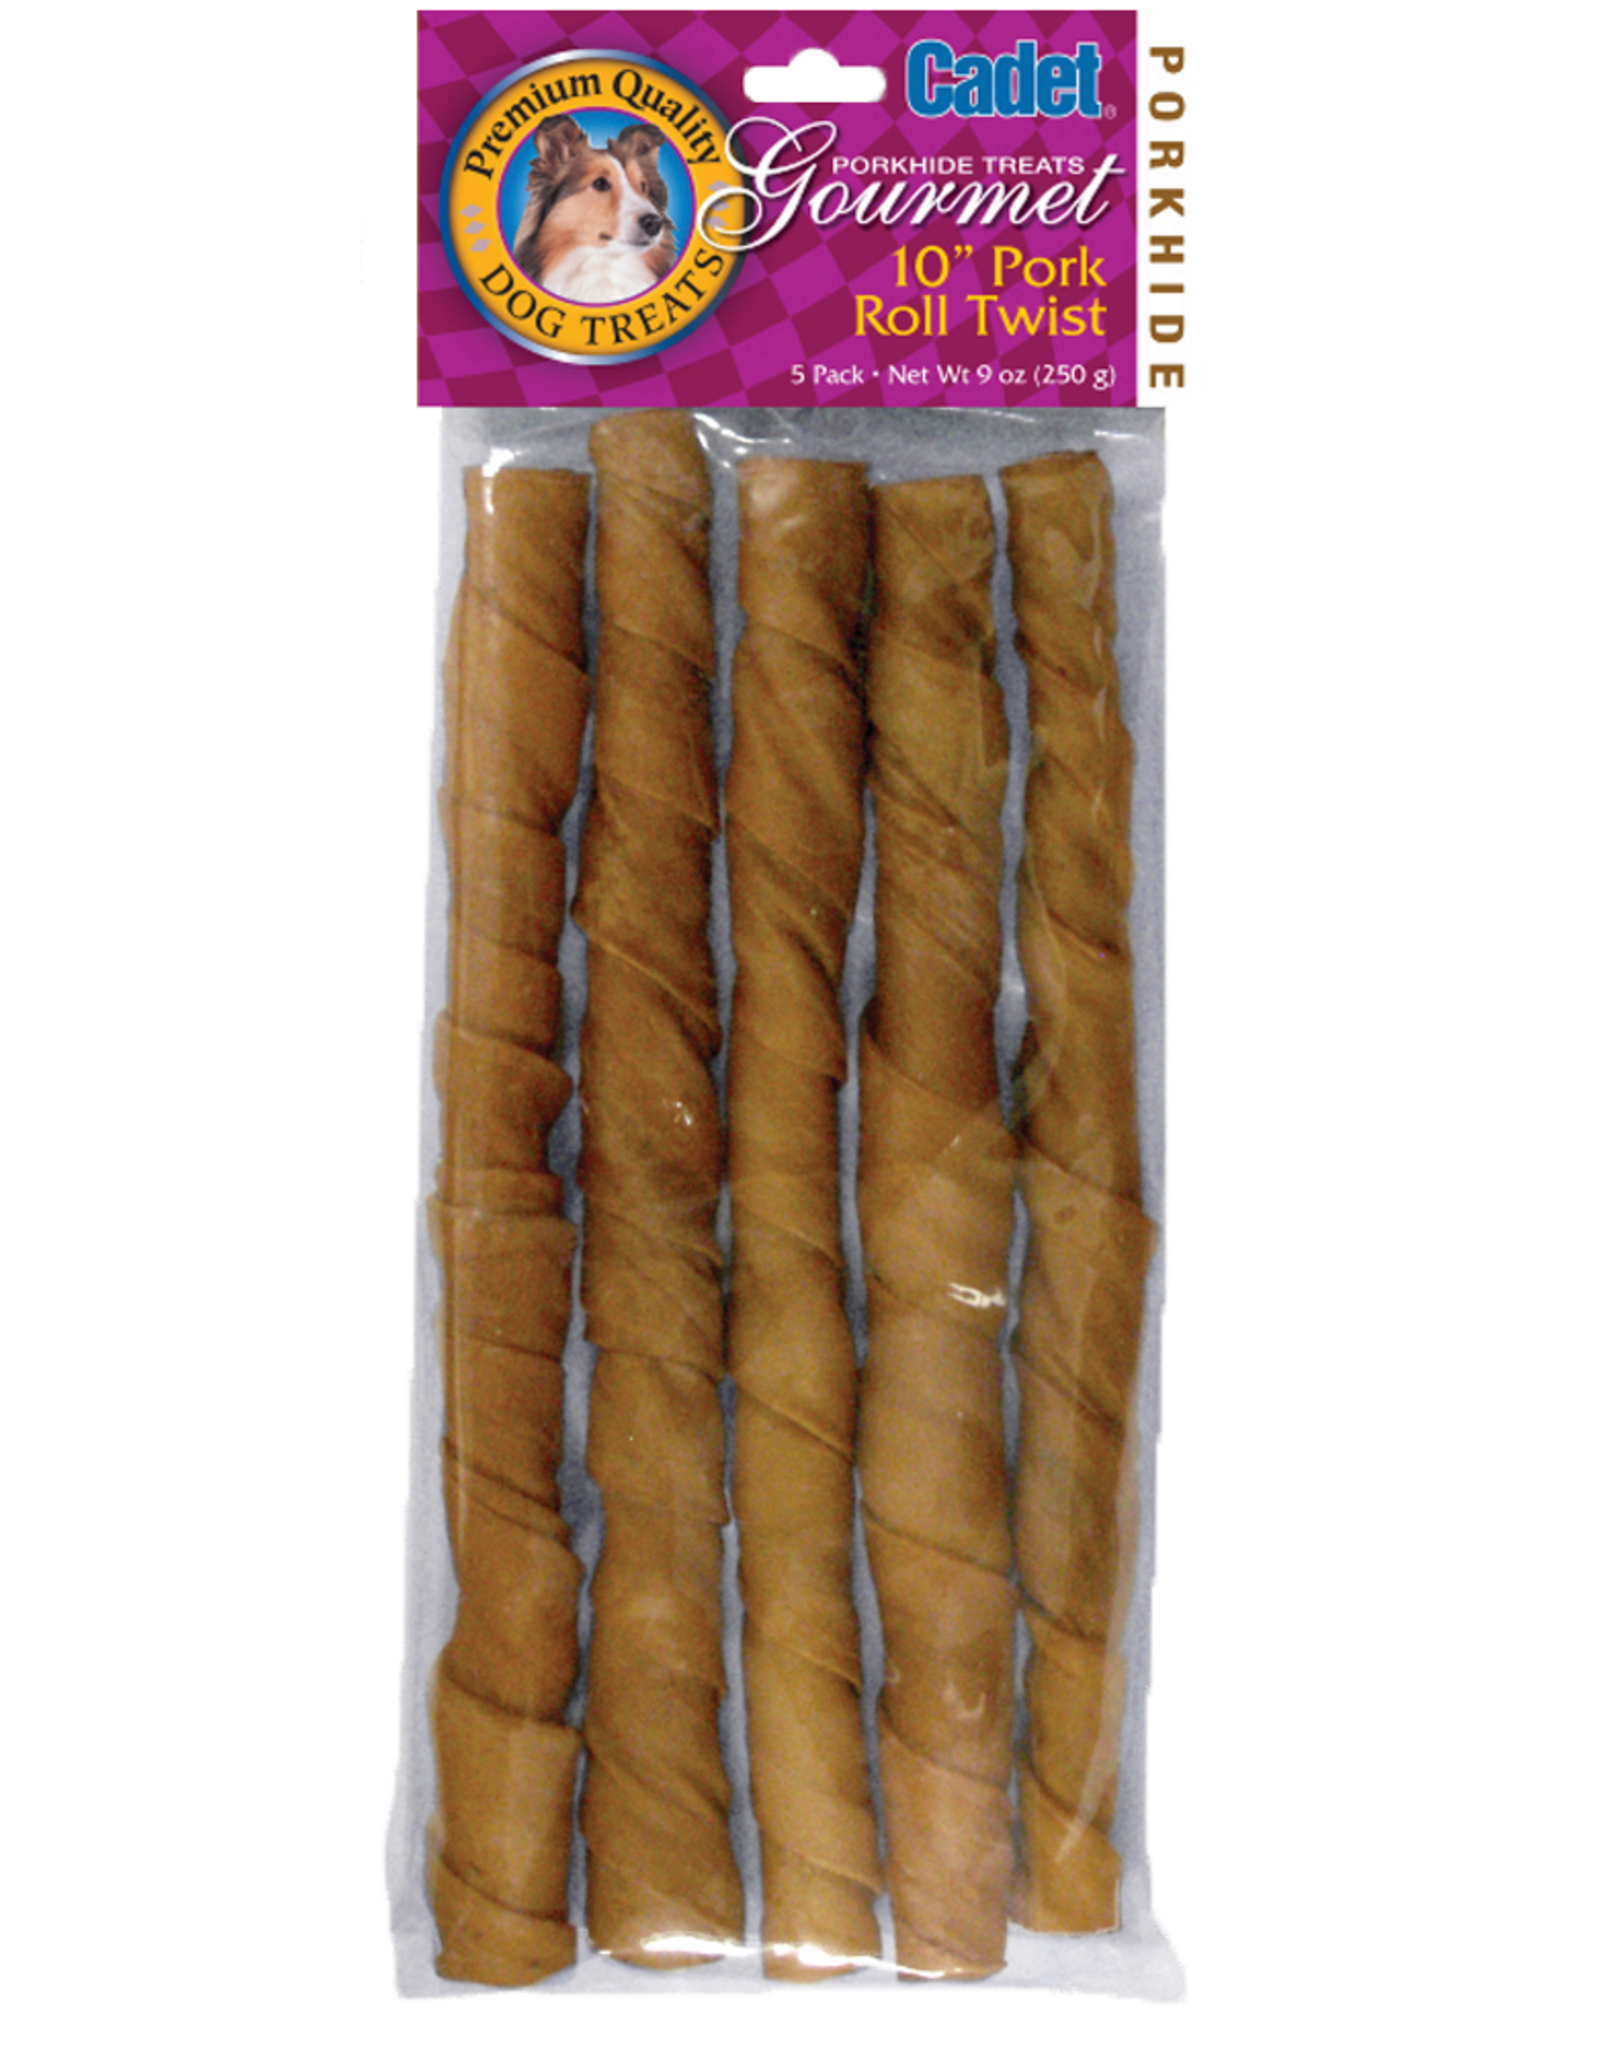 "IMS TRADING CORPORATION CADET PORK ROLL TWIST 10"" 5PK"